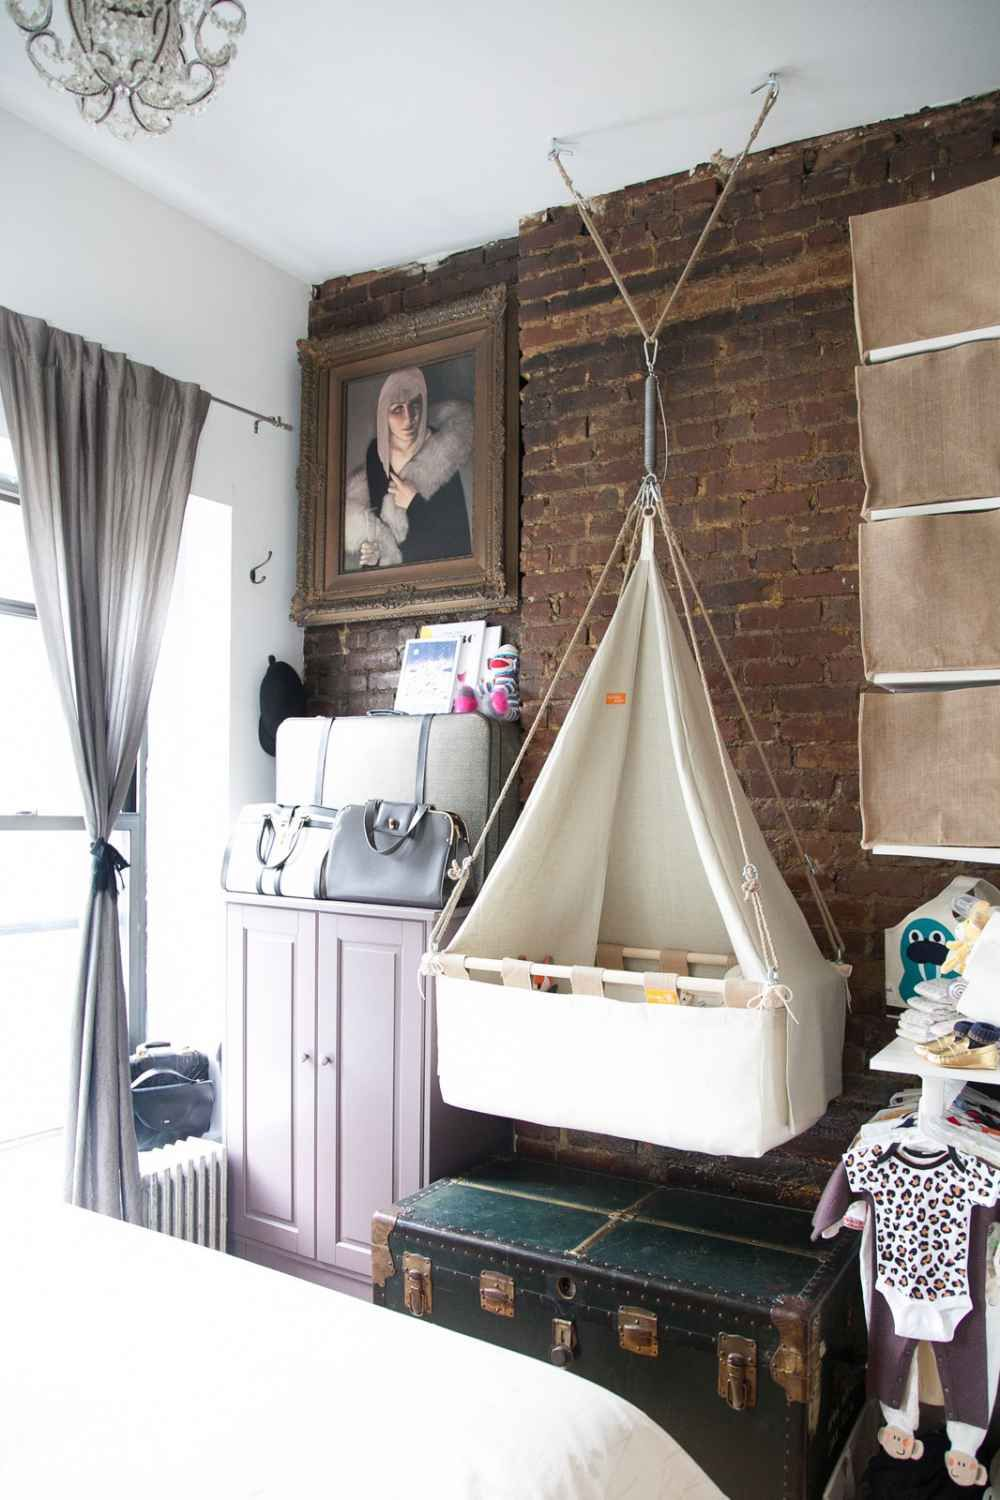 Baby room decor tips for small spaces nyc small spaces room